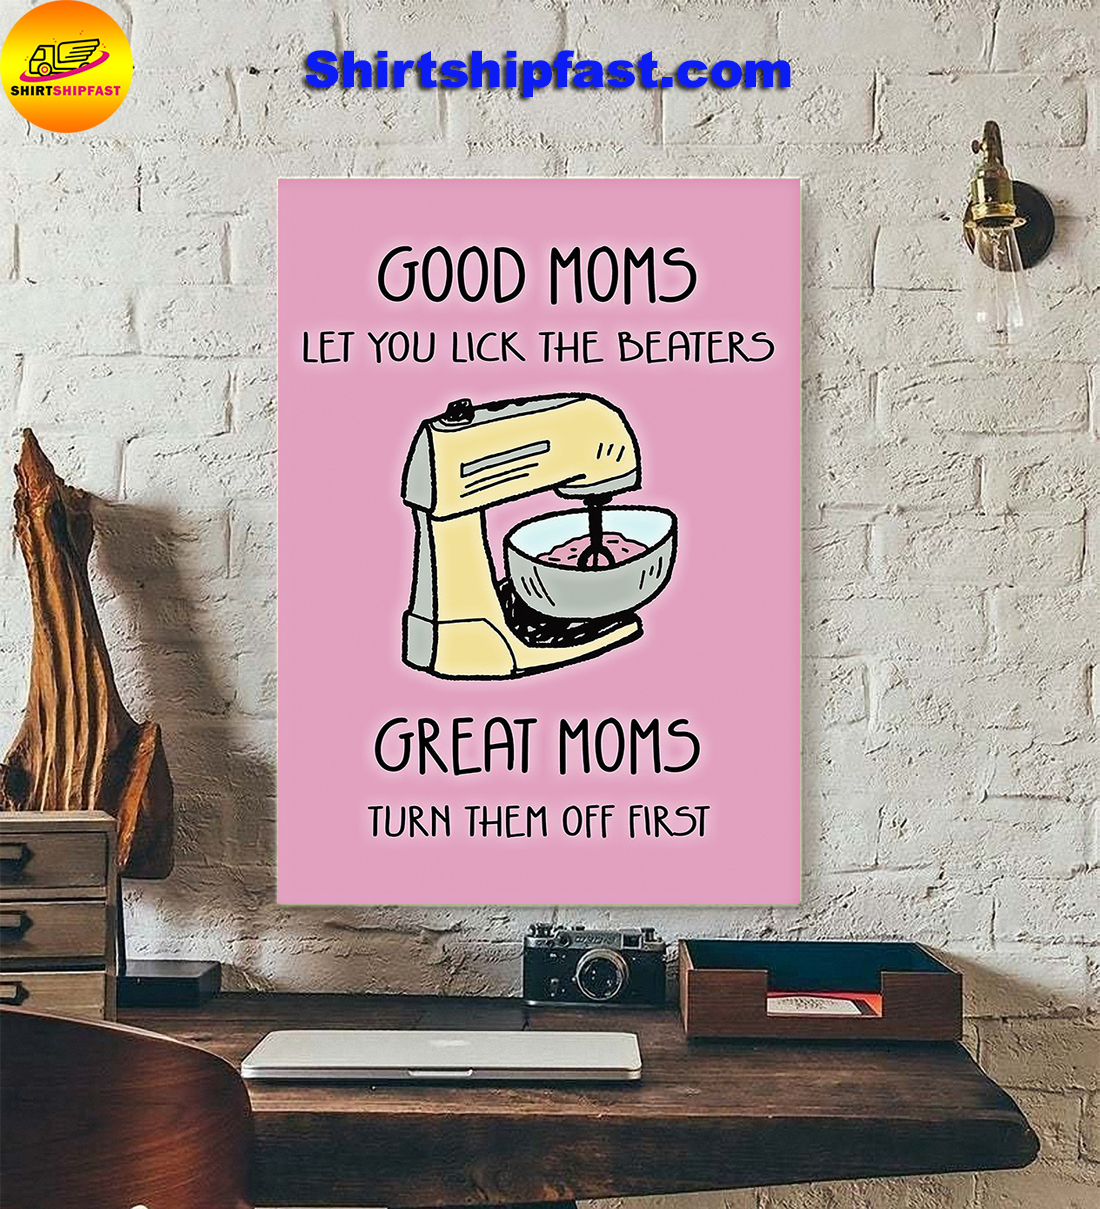 Good moms let you lick the beaters great moms turn them off first poster - Picture 1